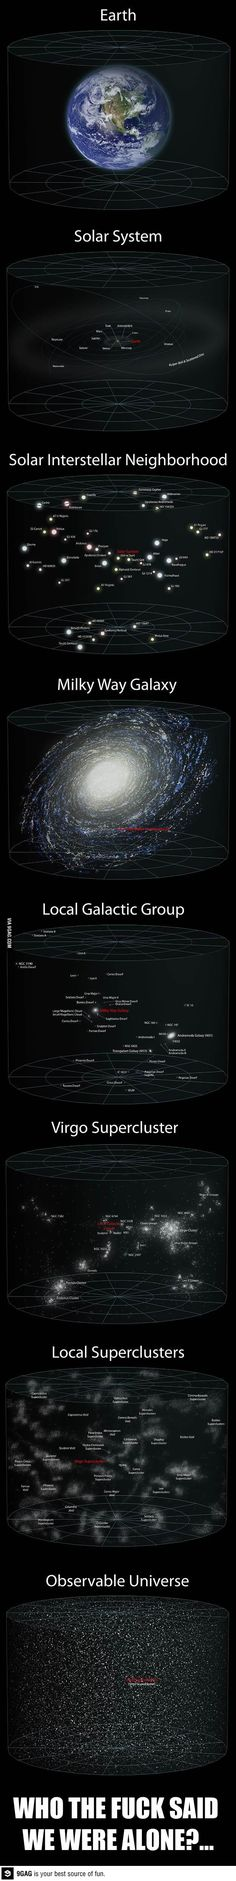 Perspective of Our Universe